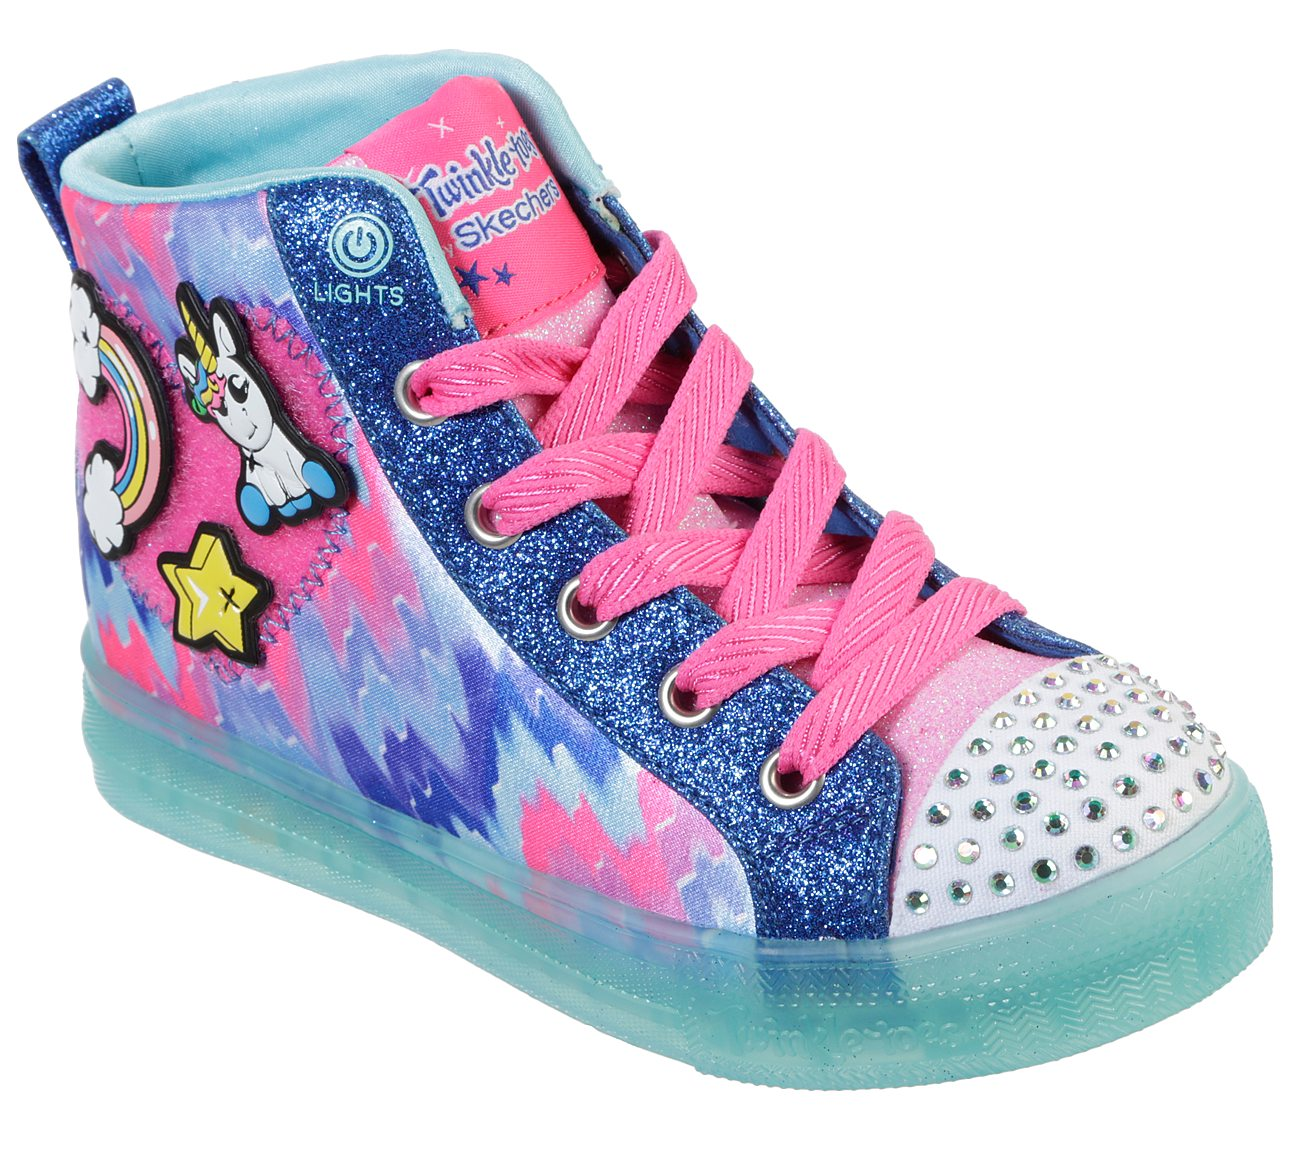 Youth Girl/'s Skechers S Lights Shuffles-Patch Play Sneakers Black//Neon Pink